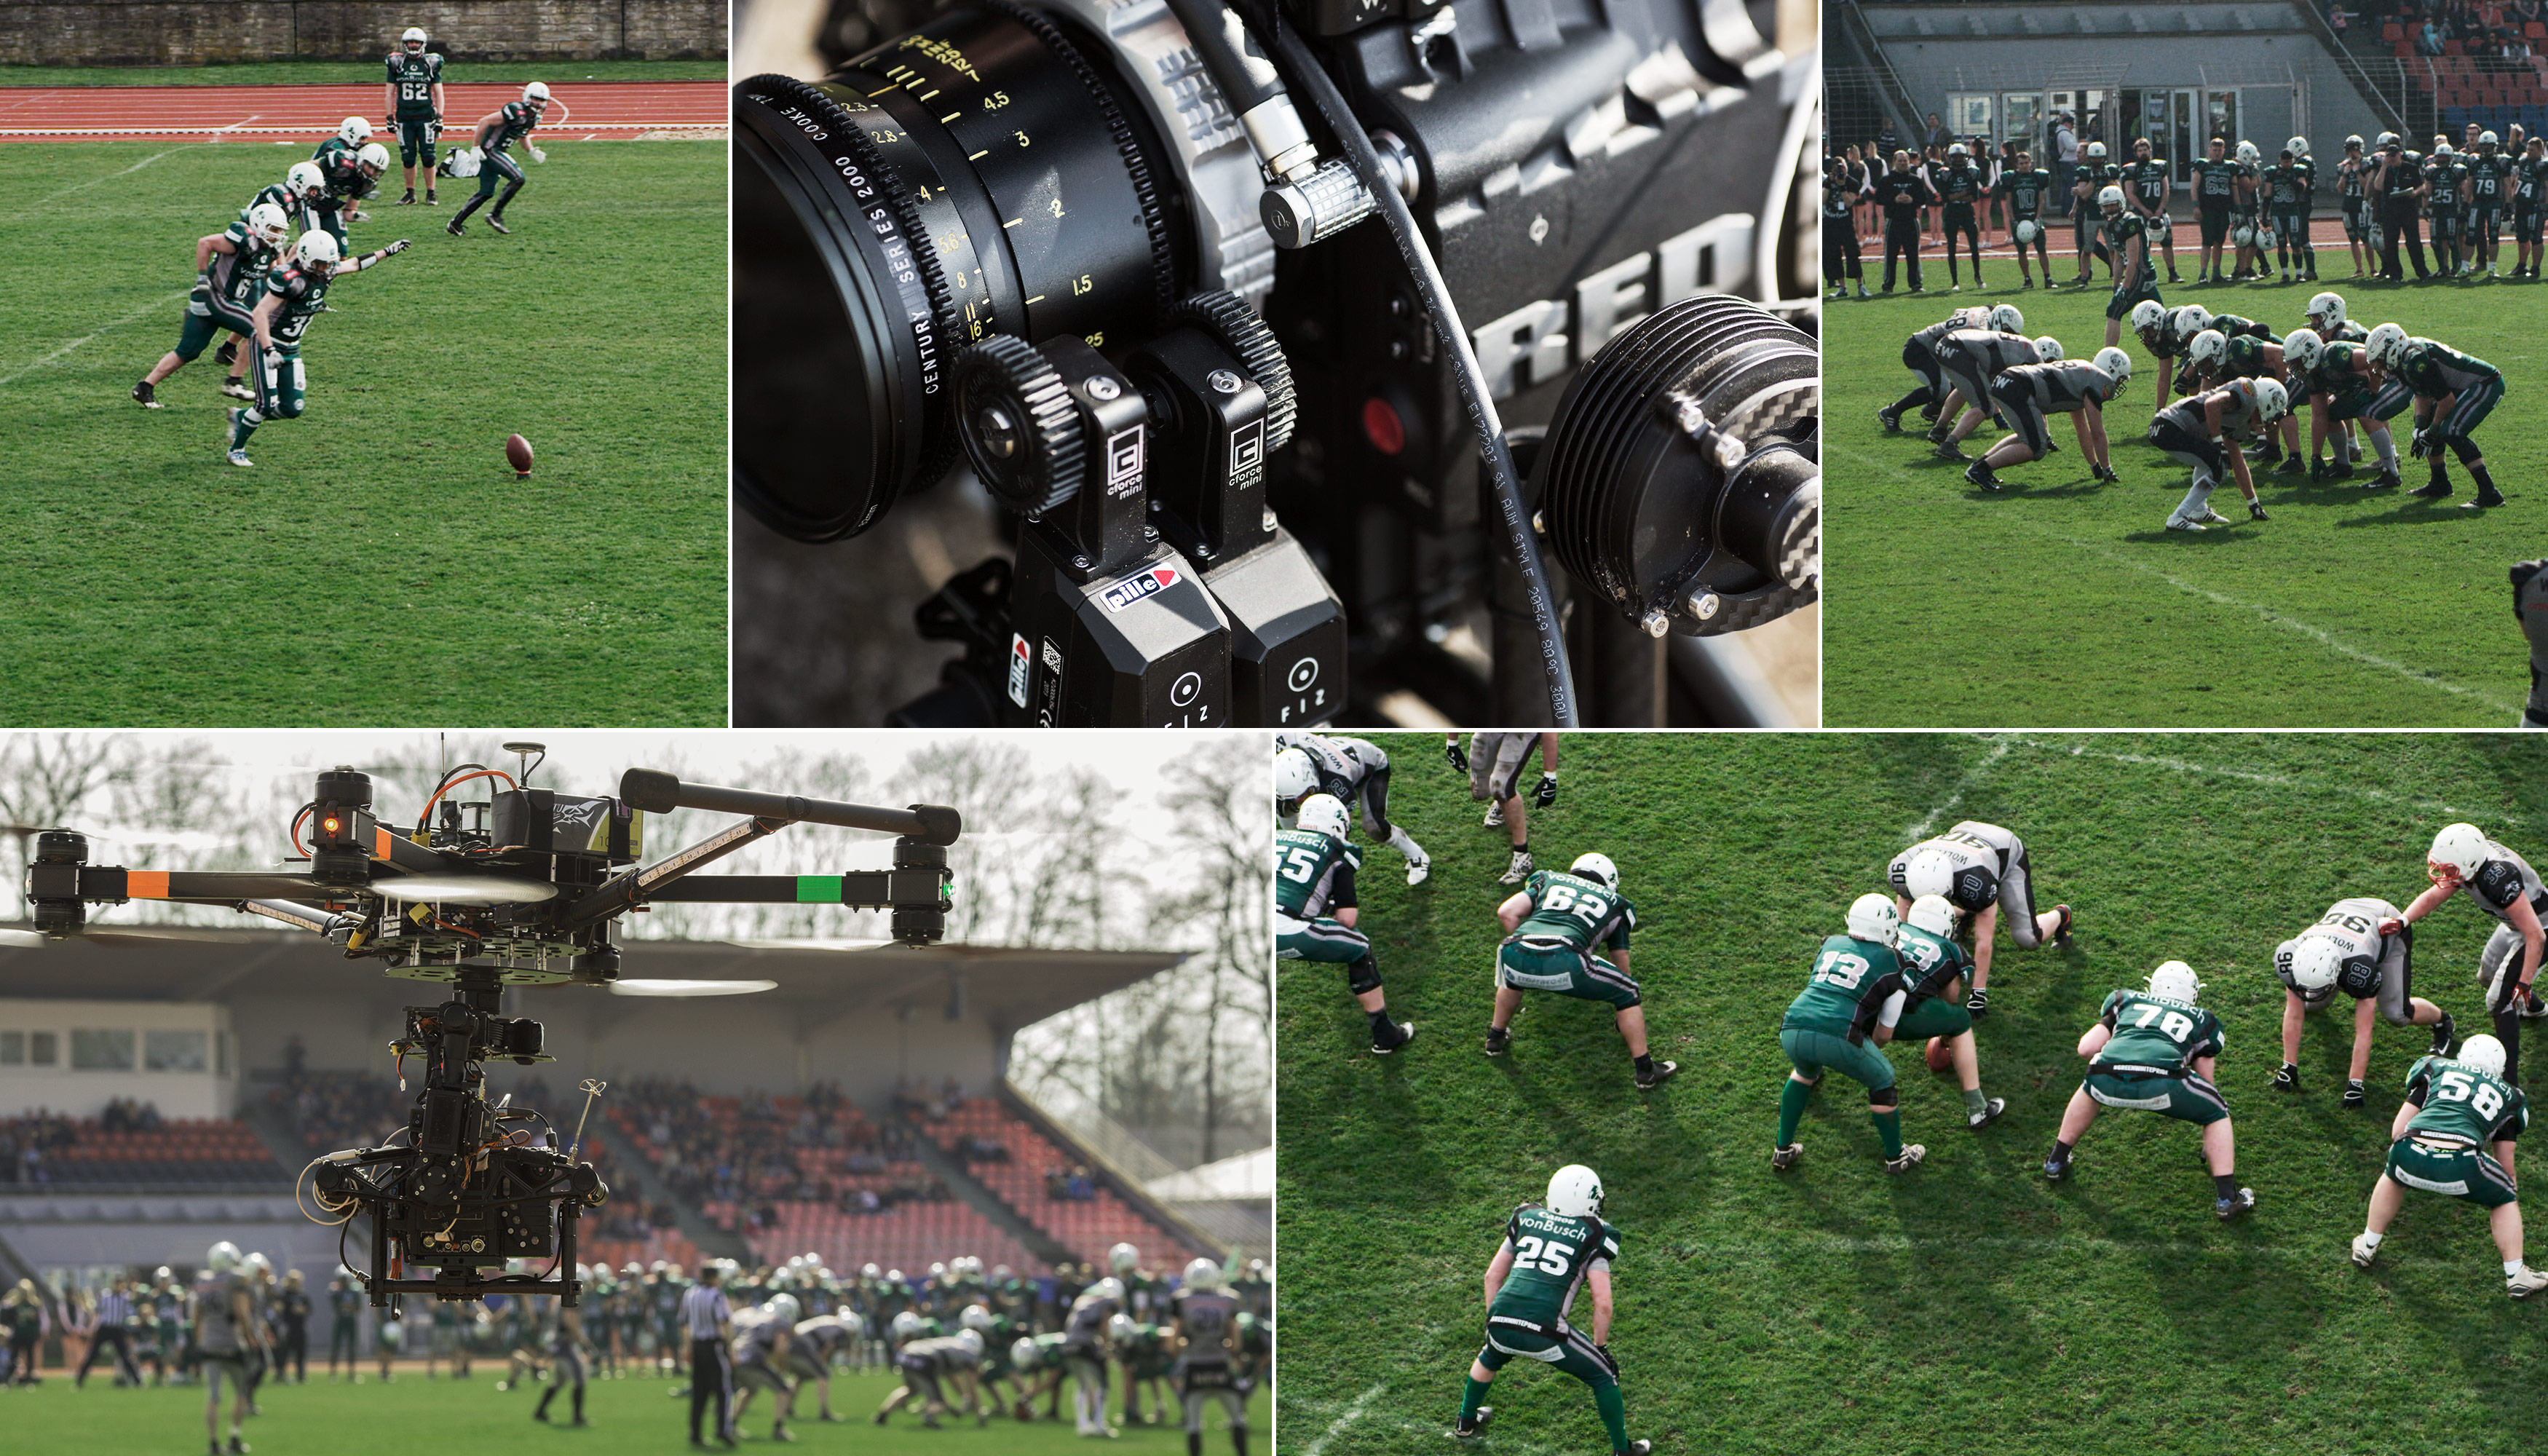 kopterwork bulldogs making of american football RED epic follow focus cooke